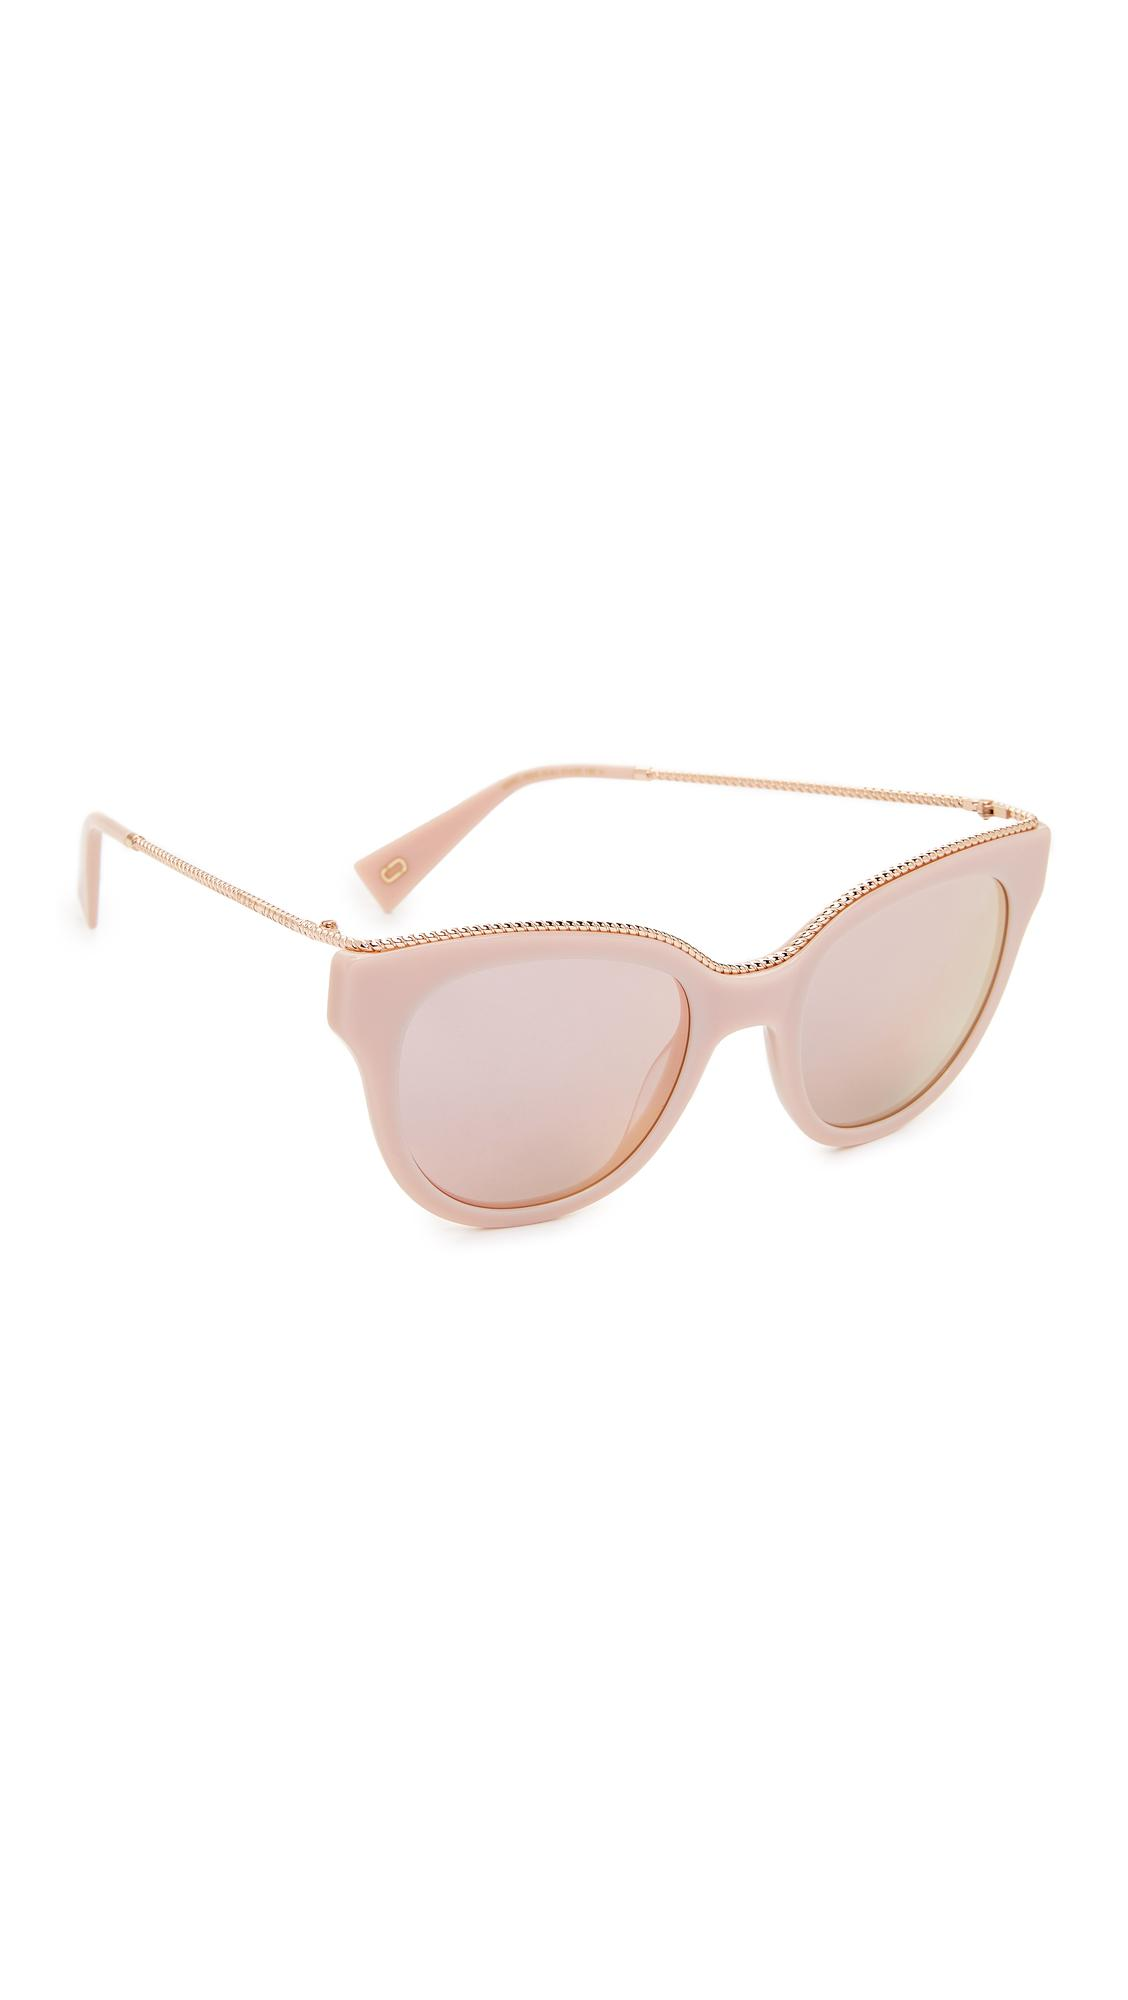 02e34d944cfee Lyst - Marc Jacobs Chain Cat Eye Sunglasses in Pink